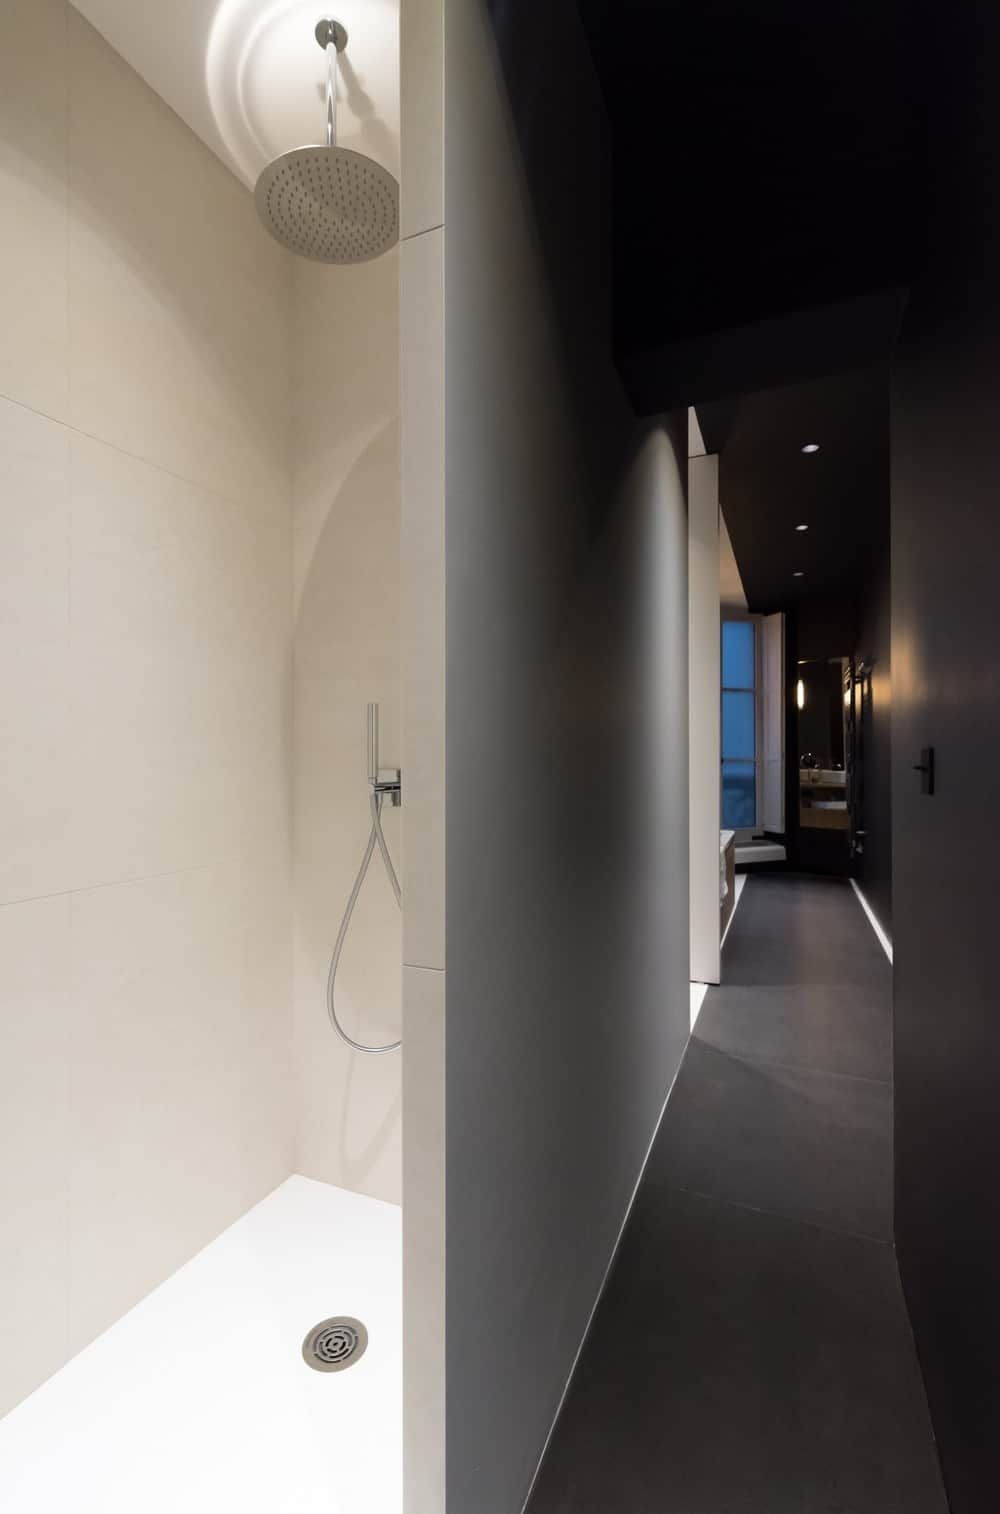 A small bathroom along the dark hallway clad in white ceramic tiles offering chrome shower head and sprayer.